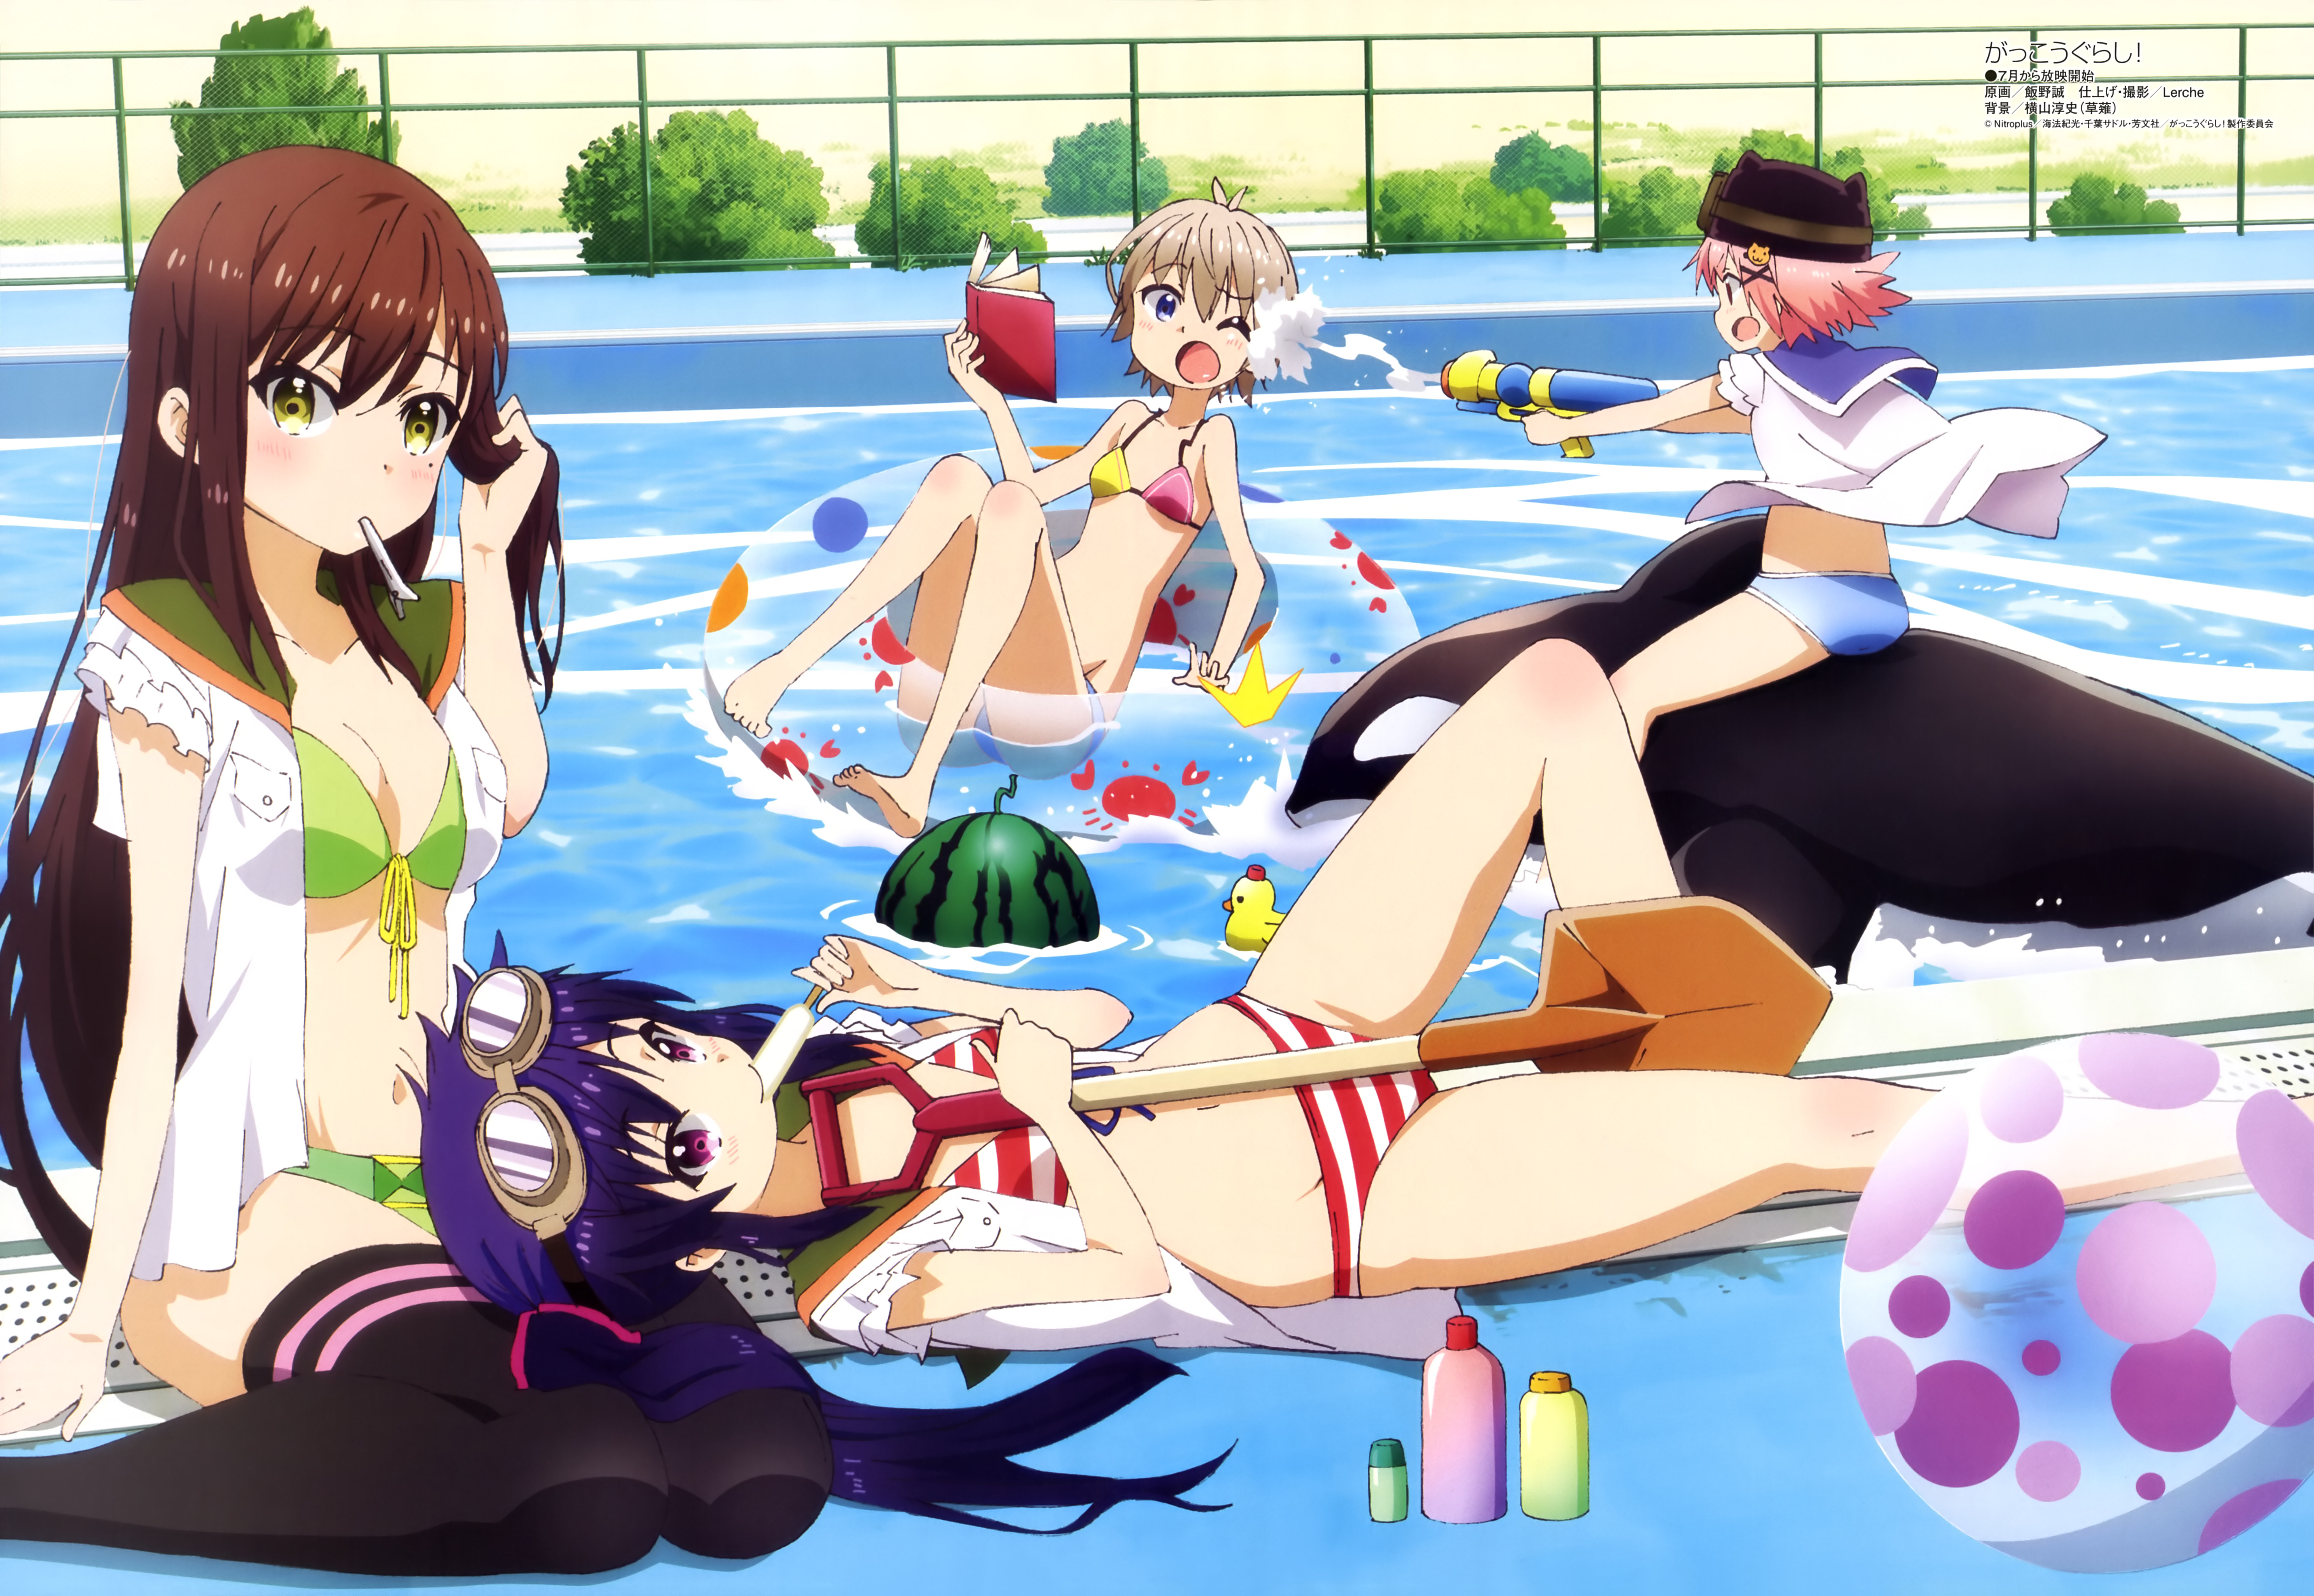 The Girls from Gakkou Gurashi! Relax at the Swimming Pool